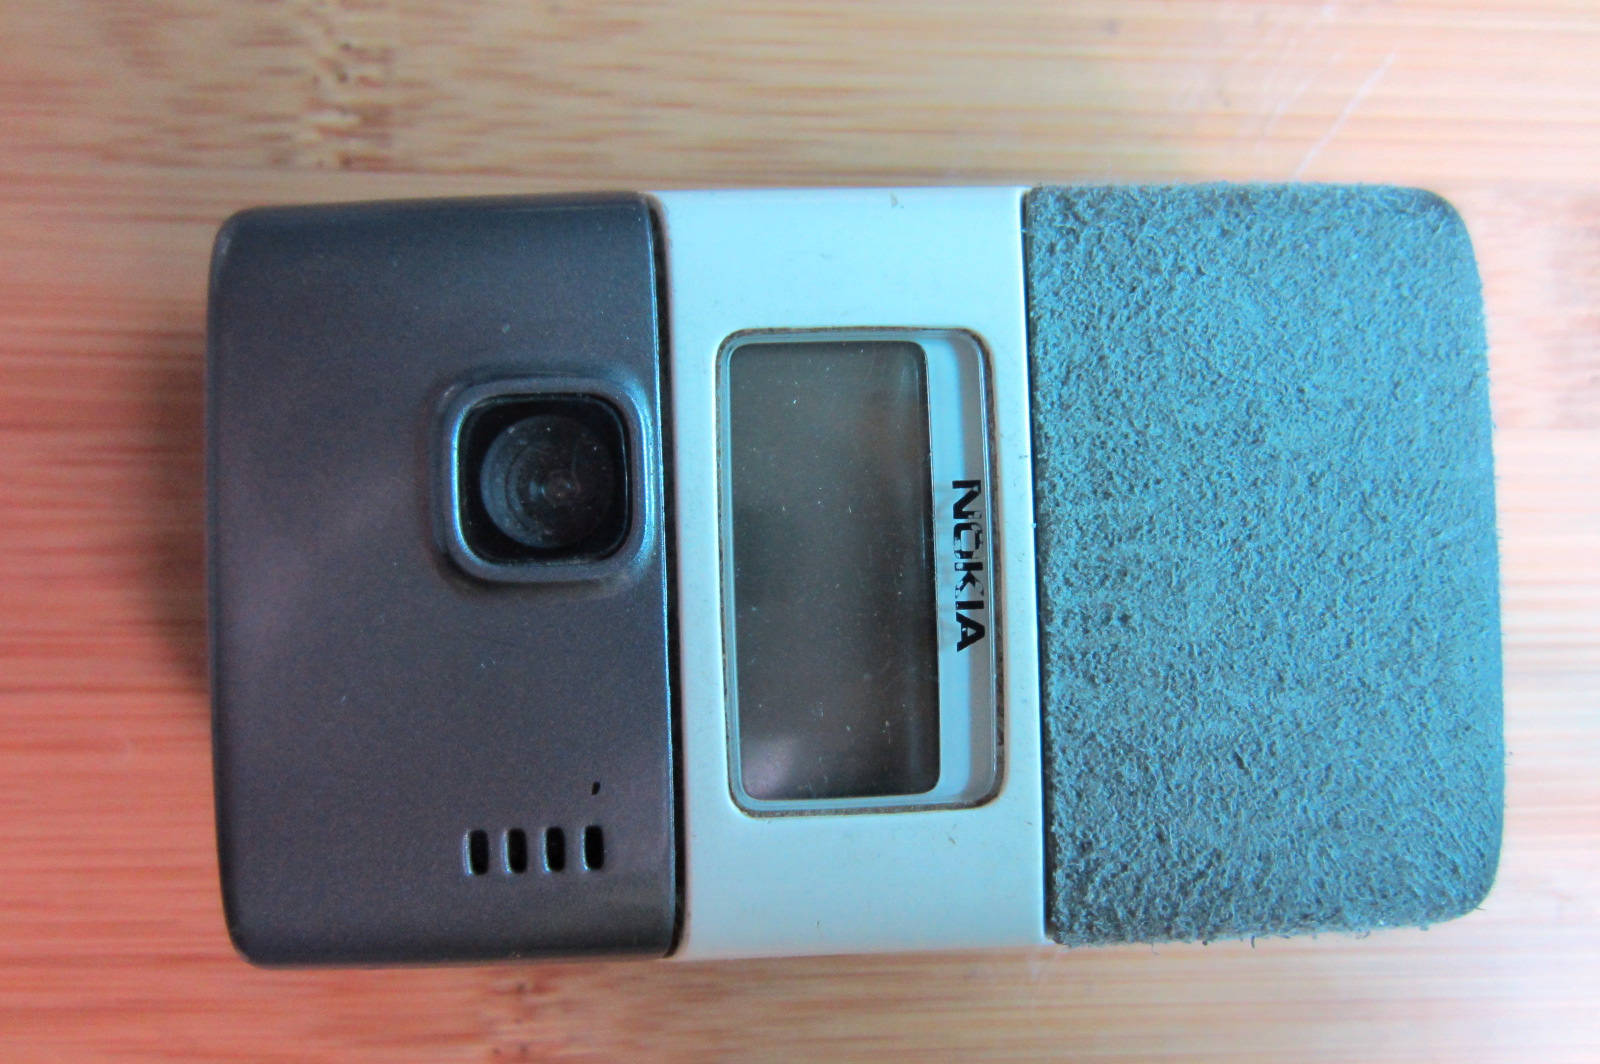 used nokia / nokia 7200 classic clamshell dual-screen, and hyun old